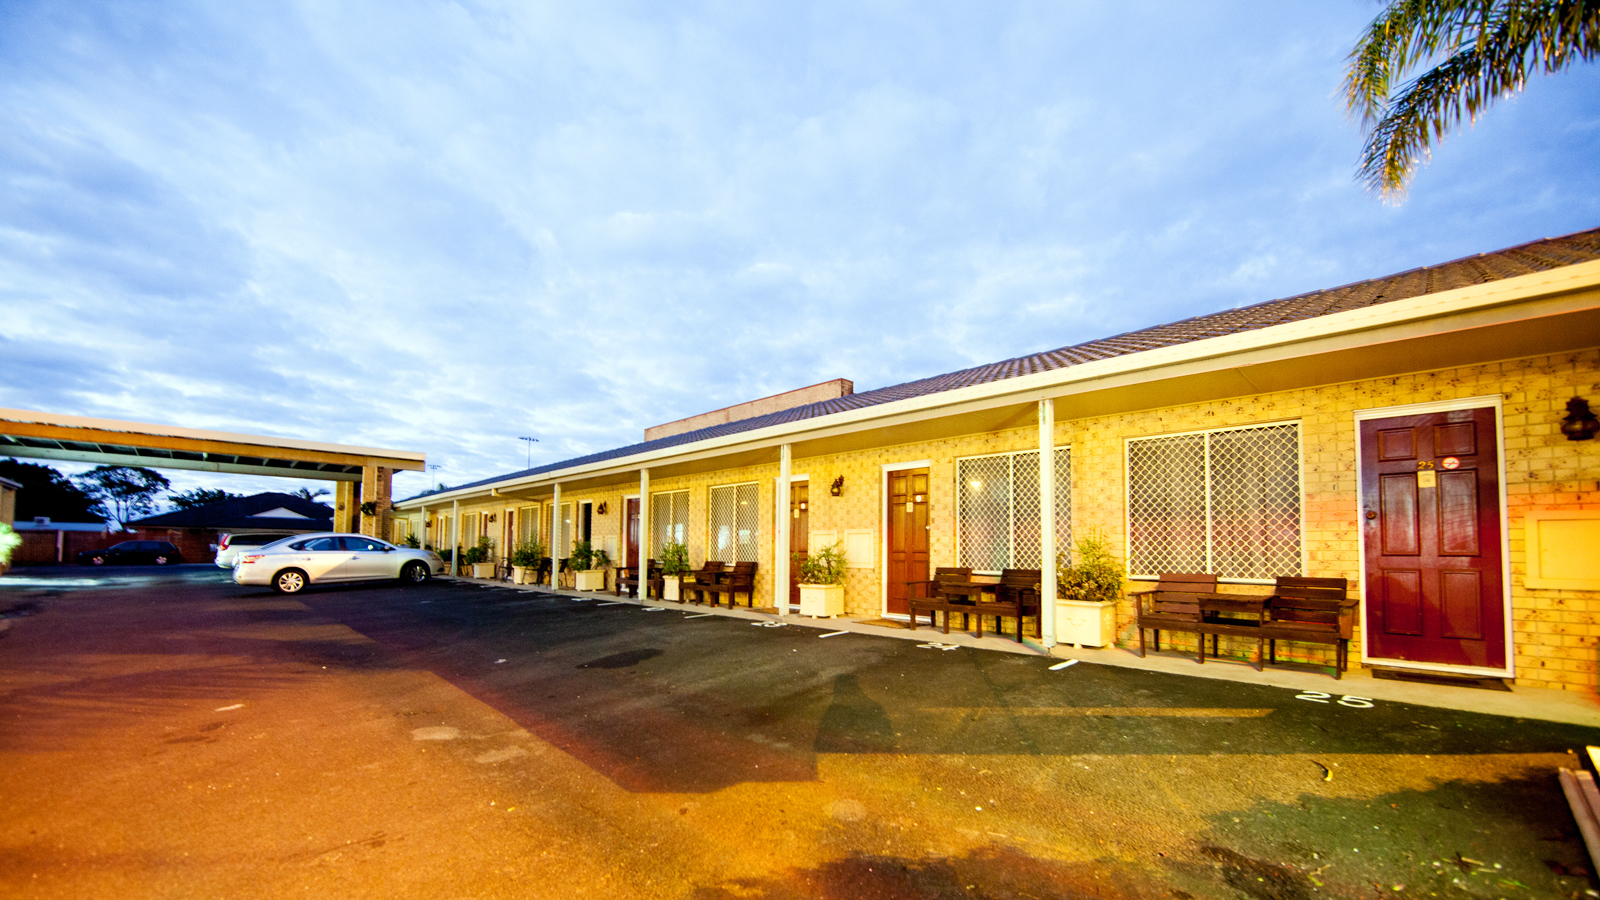 Hicraft Motel